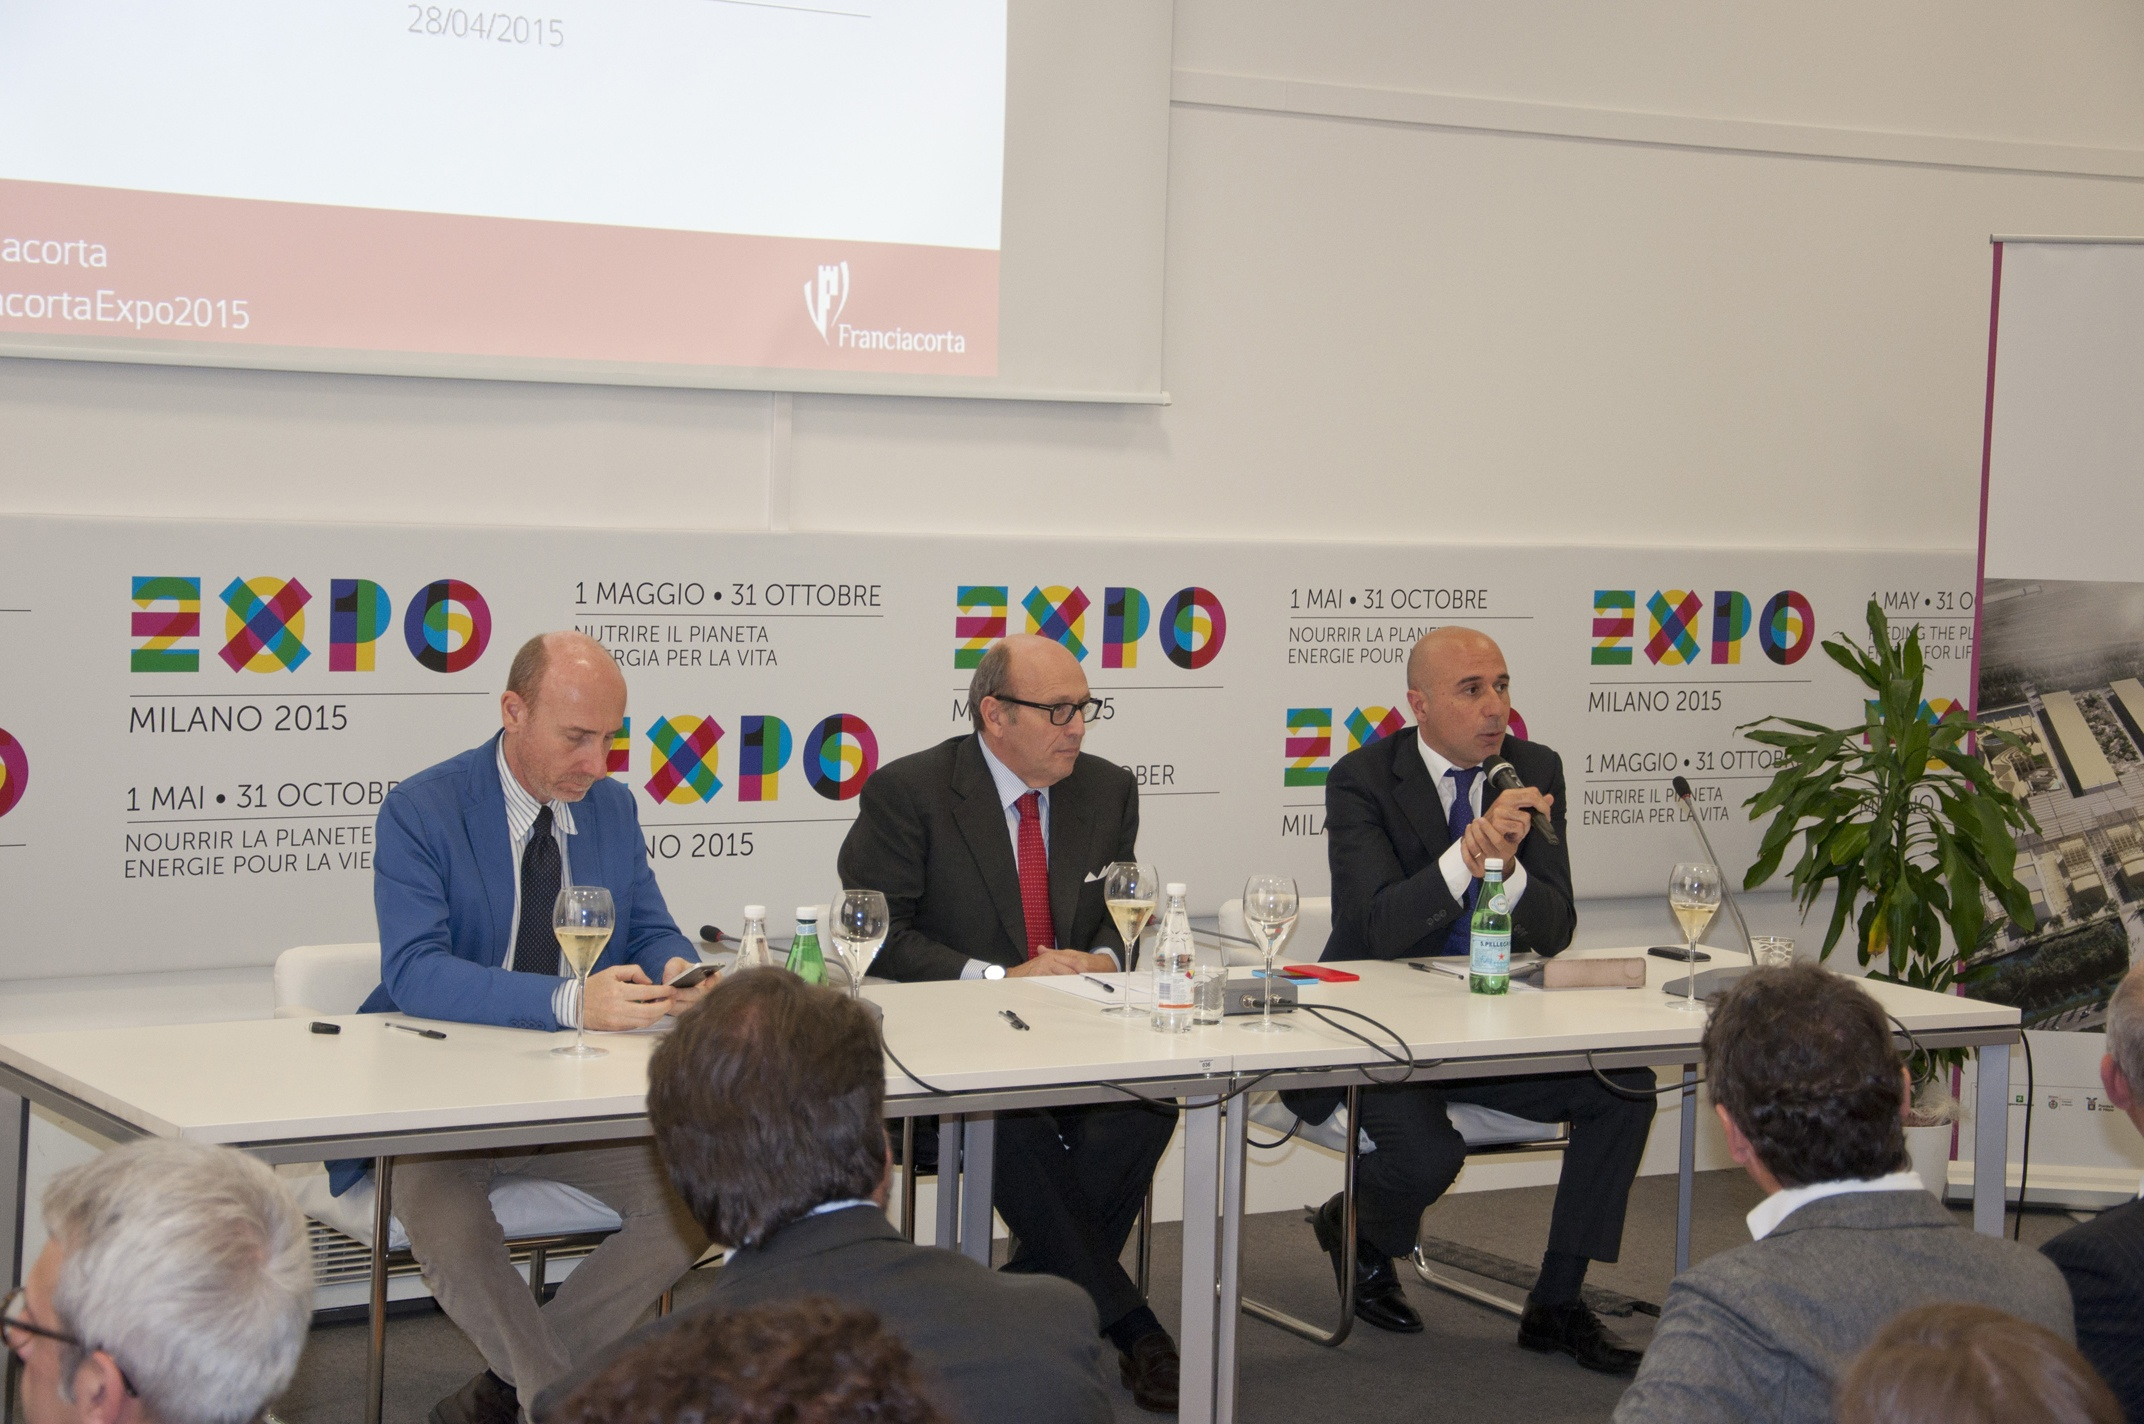 Franciacorta at Expo Milano 2015: the programme for the six months